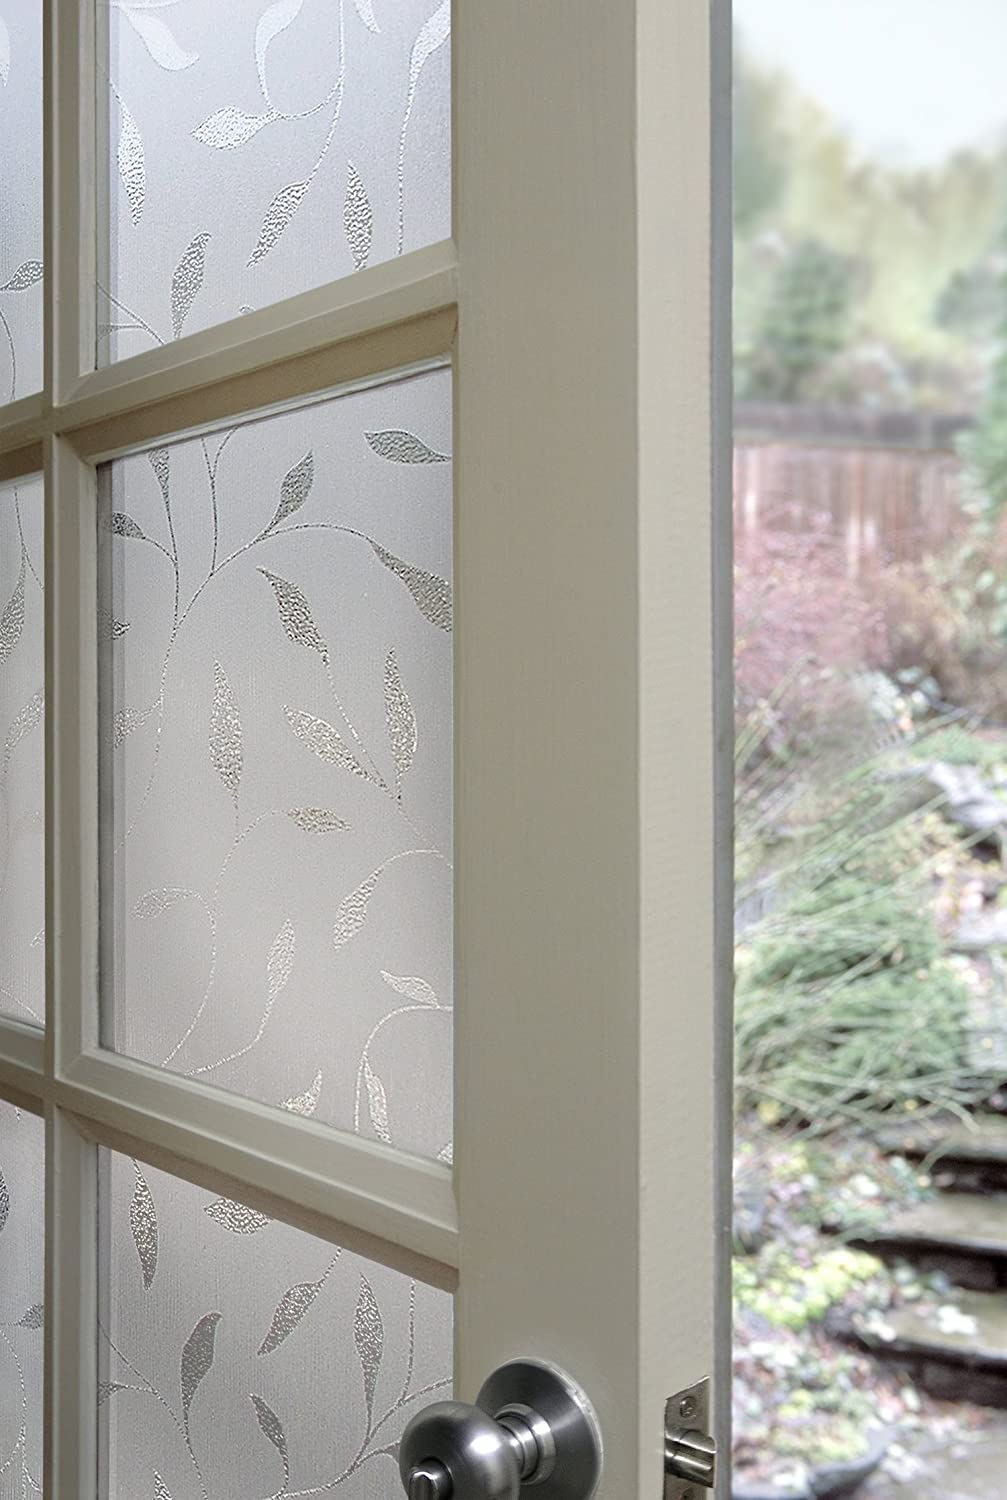 Artscape 01-0128 Etched Leaf Window Film, 24-by-36-Inch